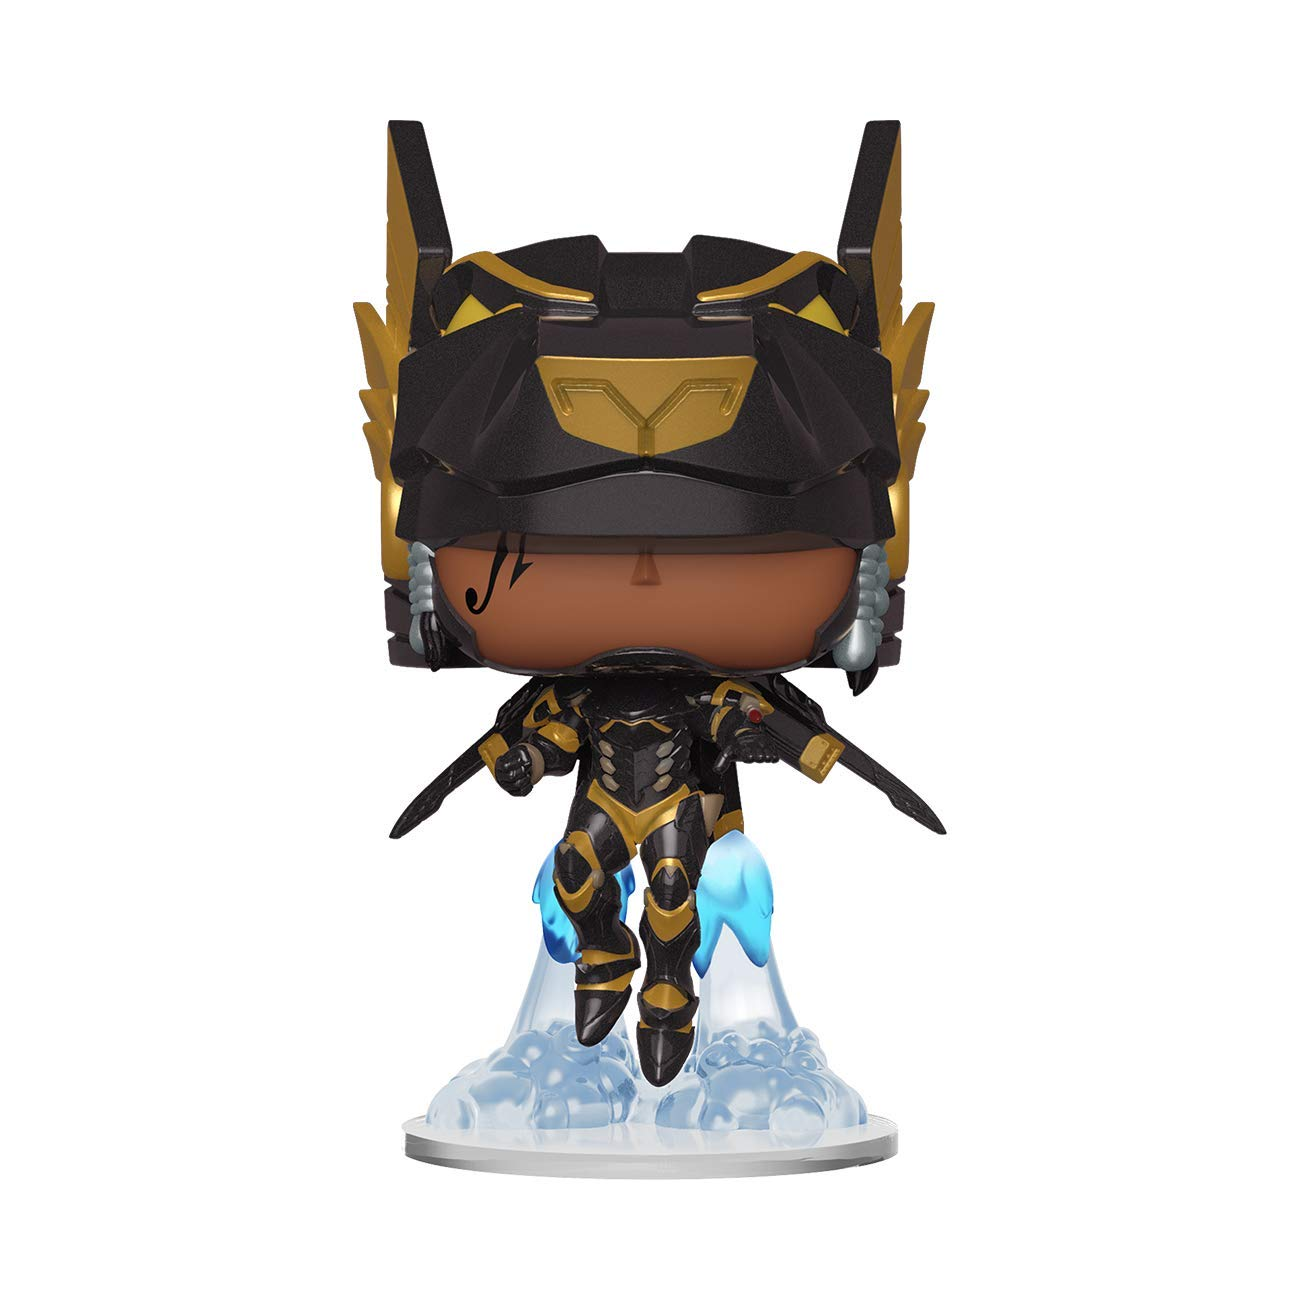 Overwatch Pharah Anubis